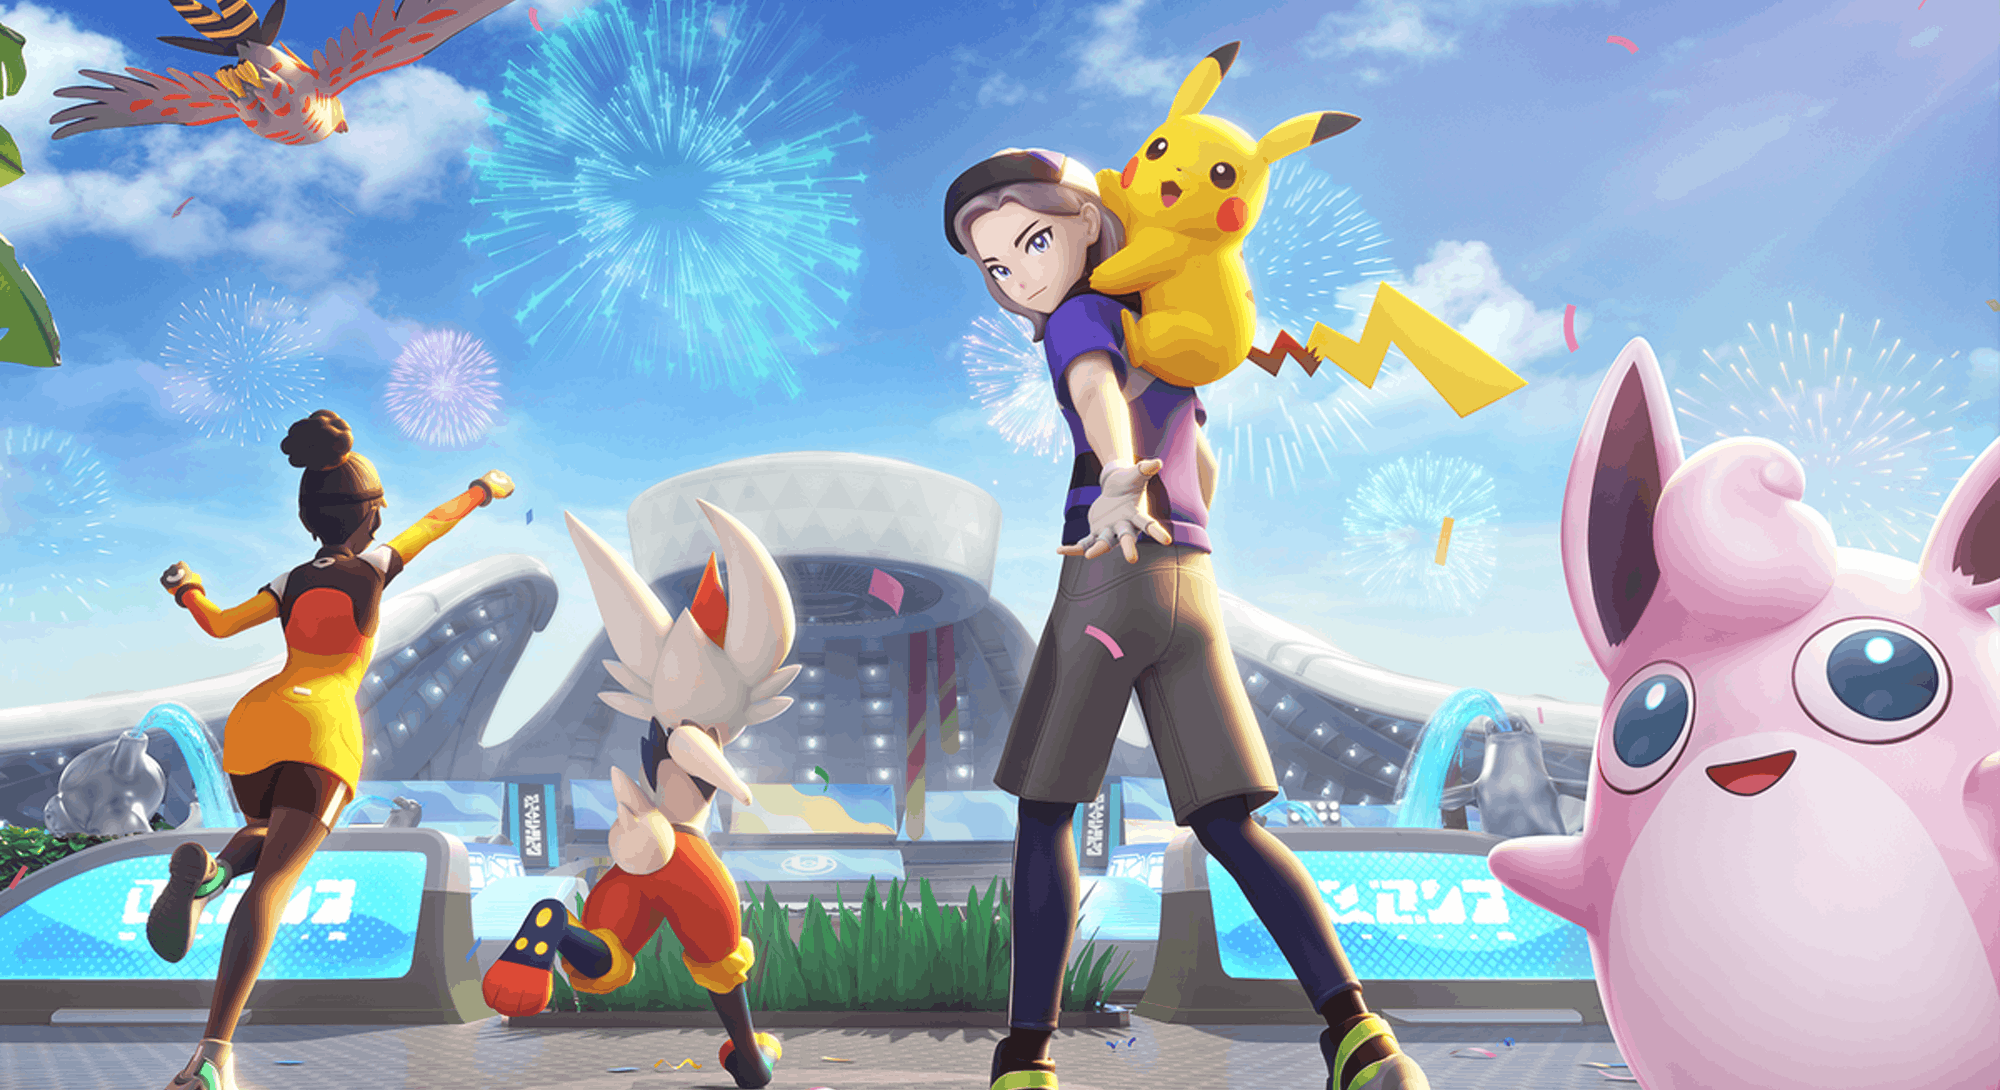 illustration of Pokémon and trainers in front of stadium from Pokémon Unite